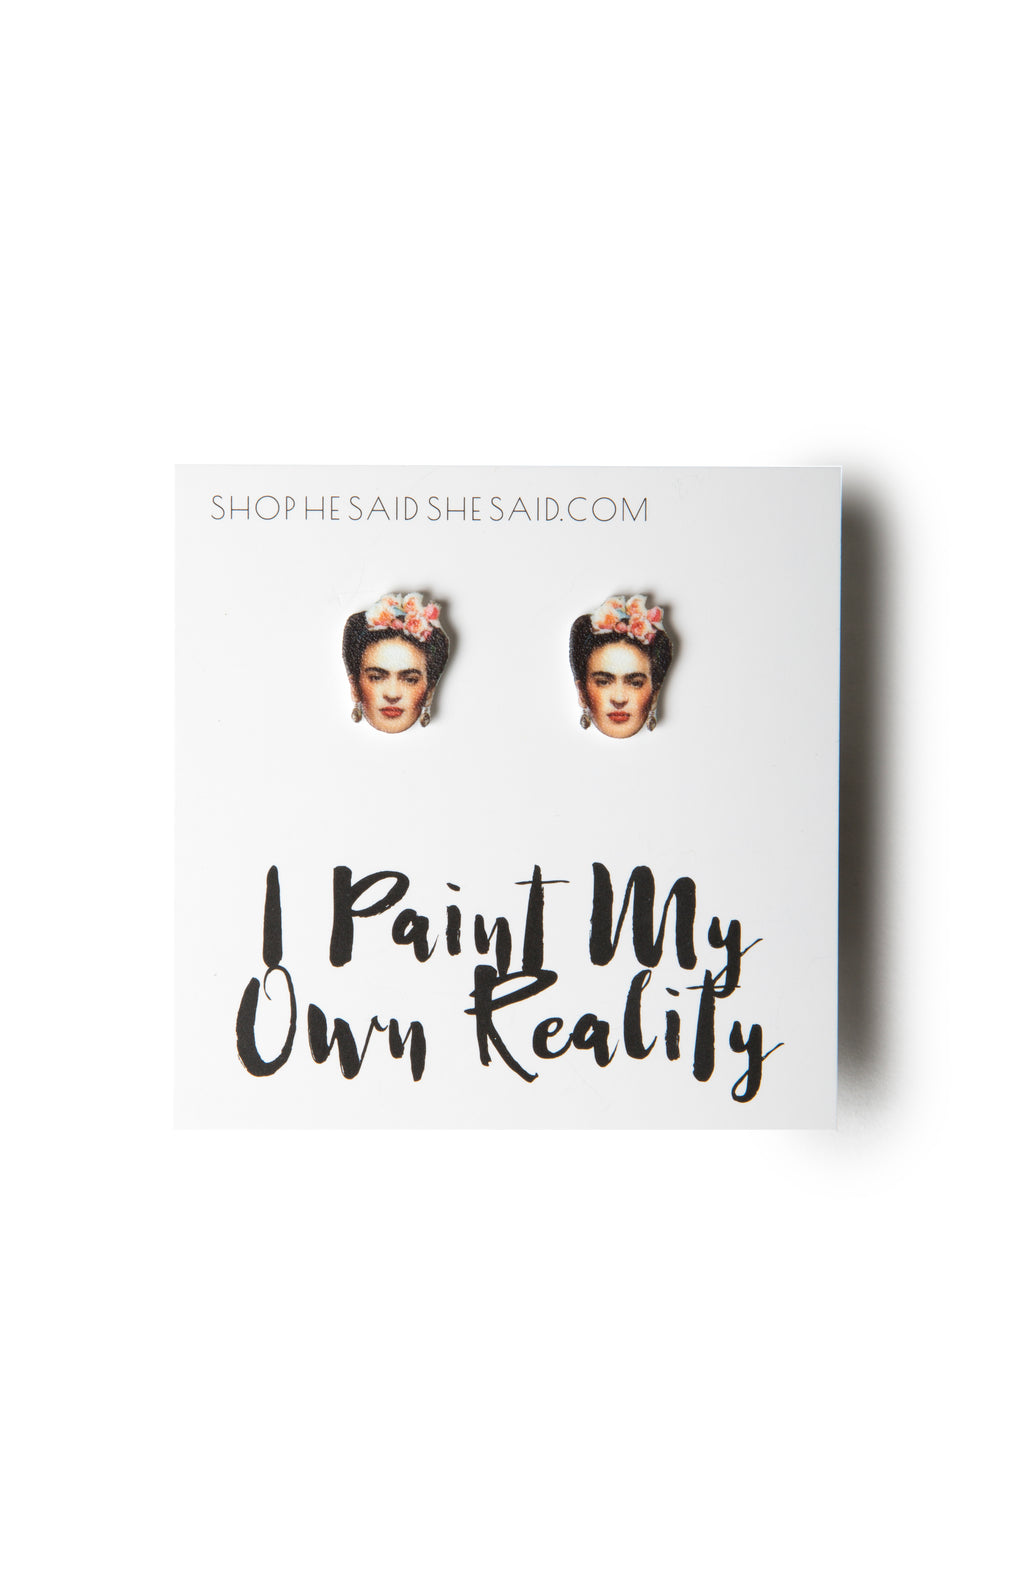 He said, She said - Frida Kahlo Earrings